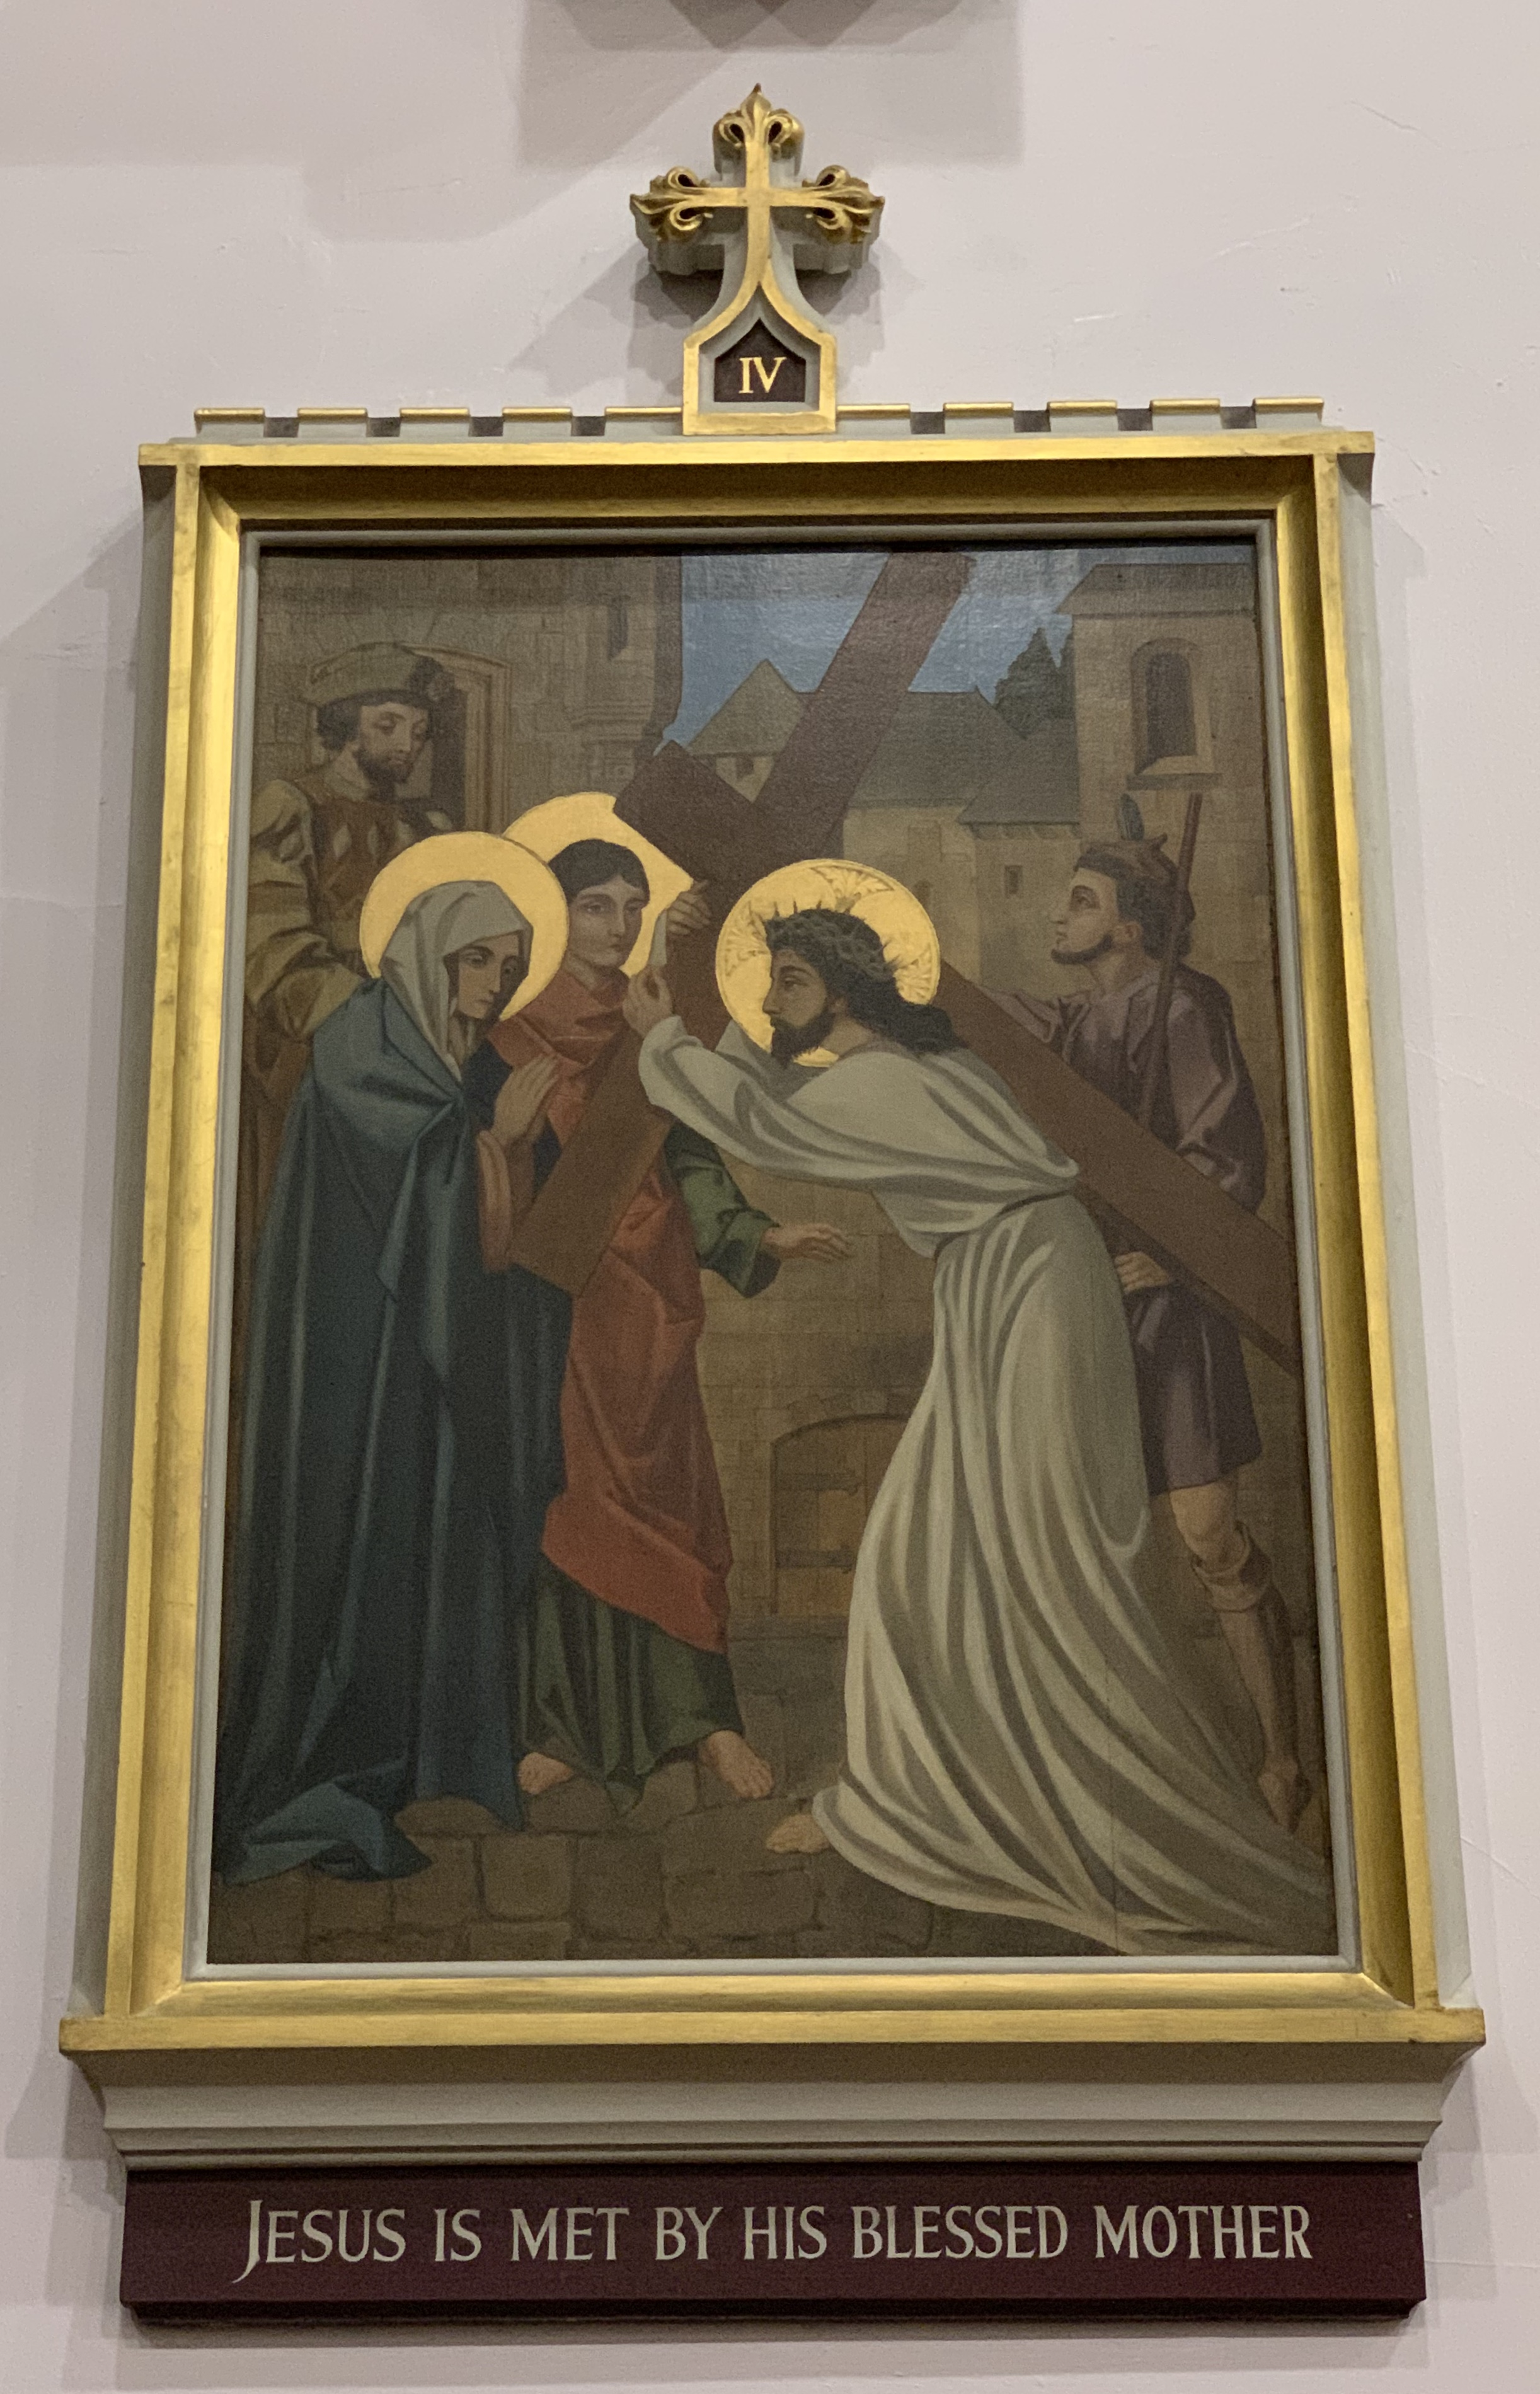 IV. Jesus is met by his blessed mother